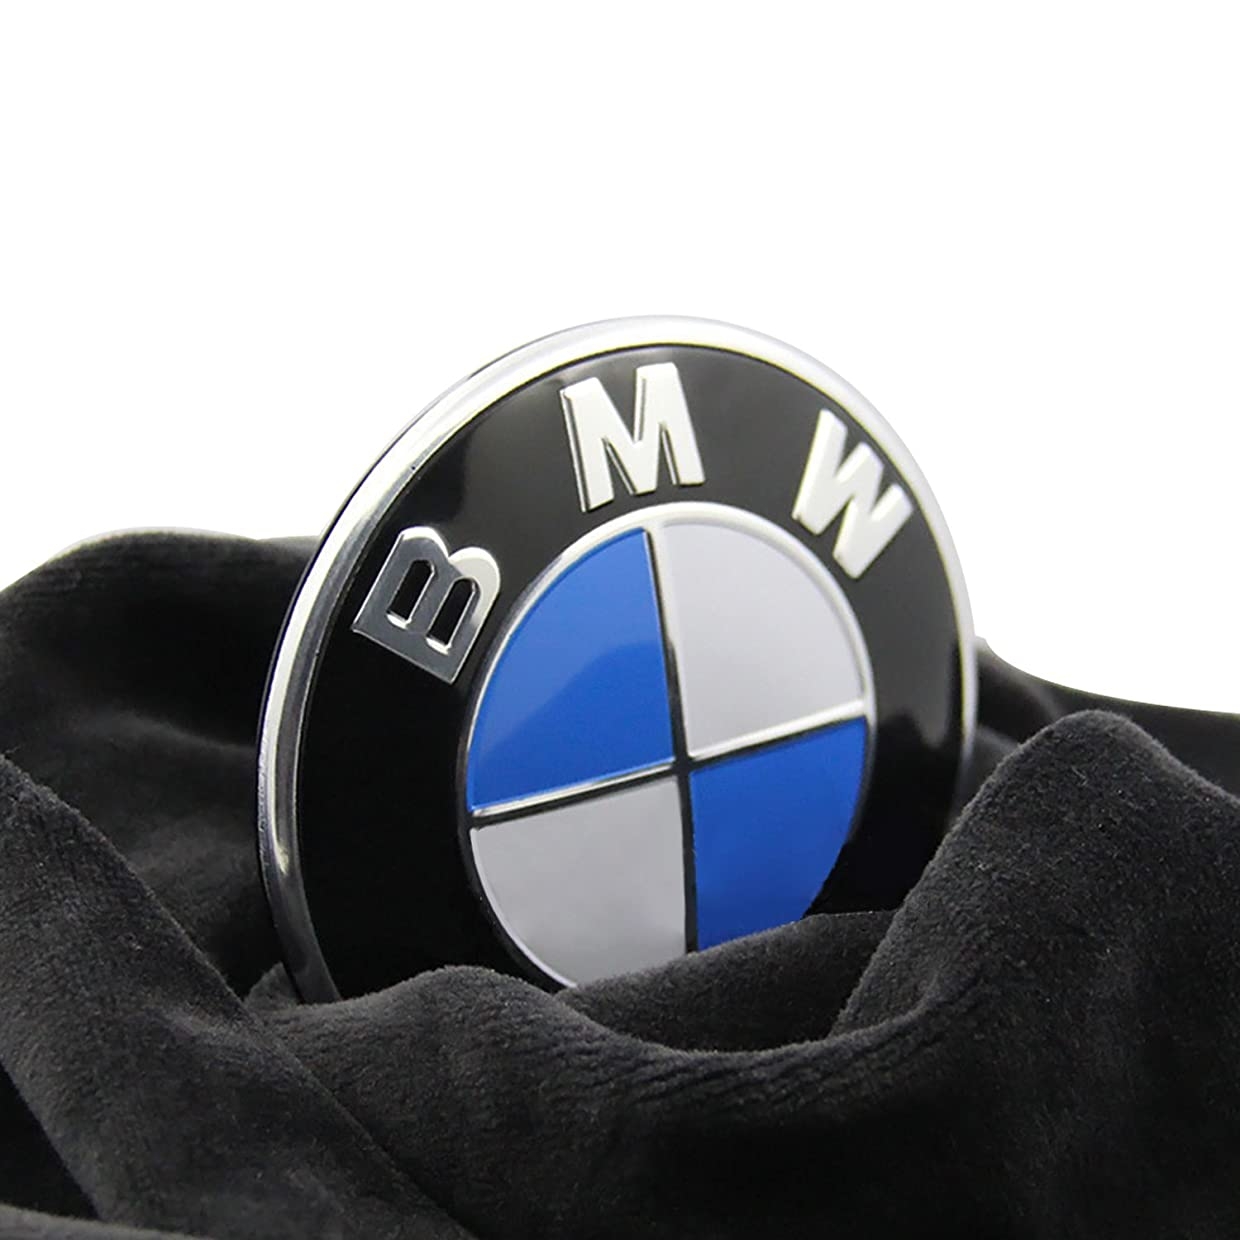 Emblem Logo Replacement for BMW Hood/Trunk 82mm for ALL Models E30 E36 E34 E60 E65 E38 X3 X5 X6 3 4 5 6 7 8 ktxrcccdhg9